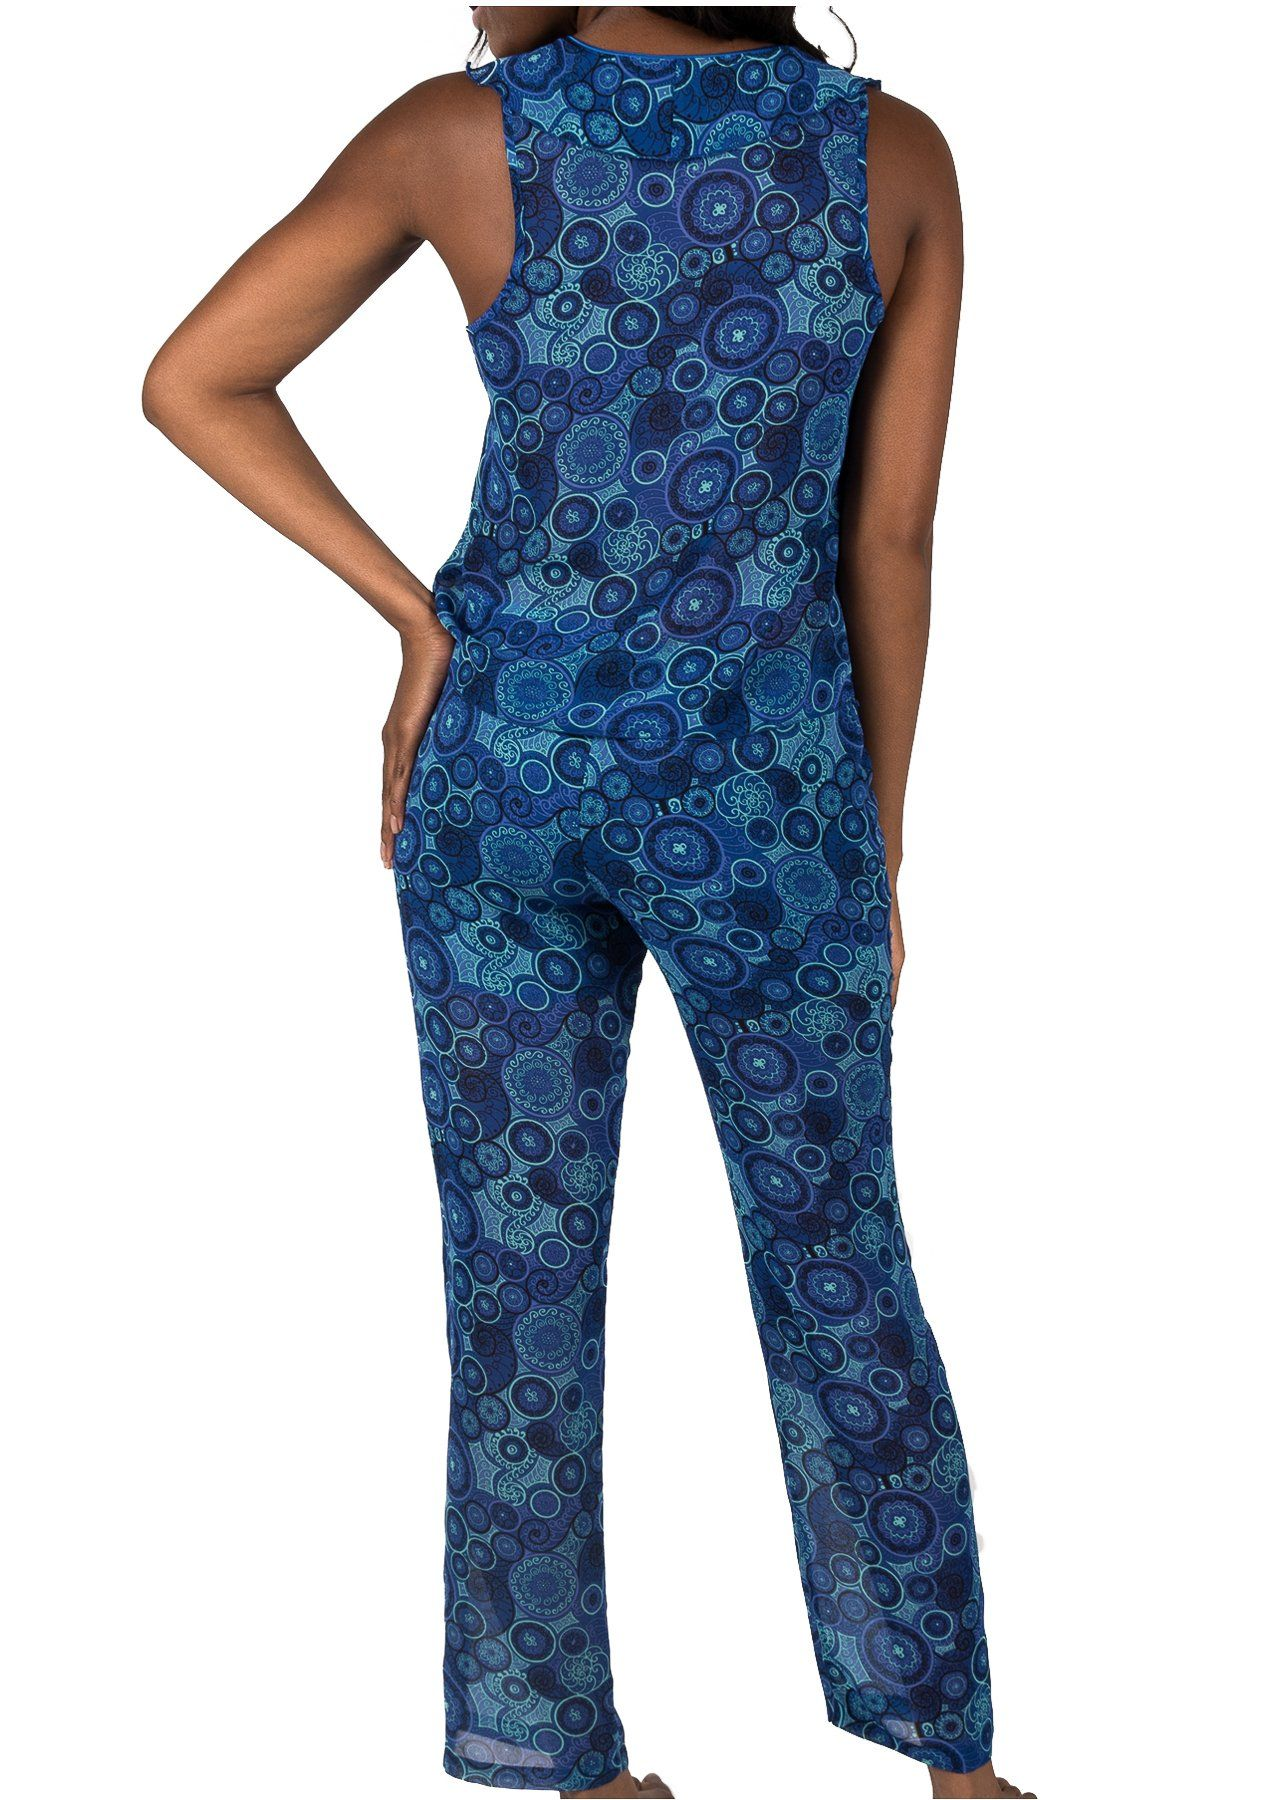 Kali Print Pajama #25776 Back View